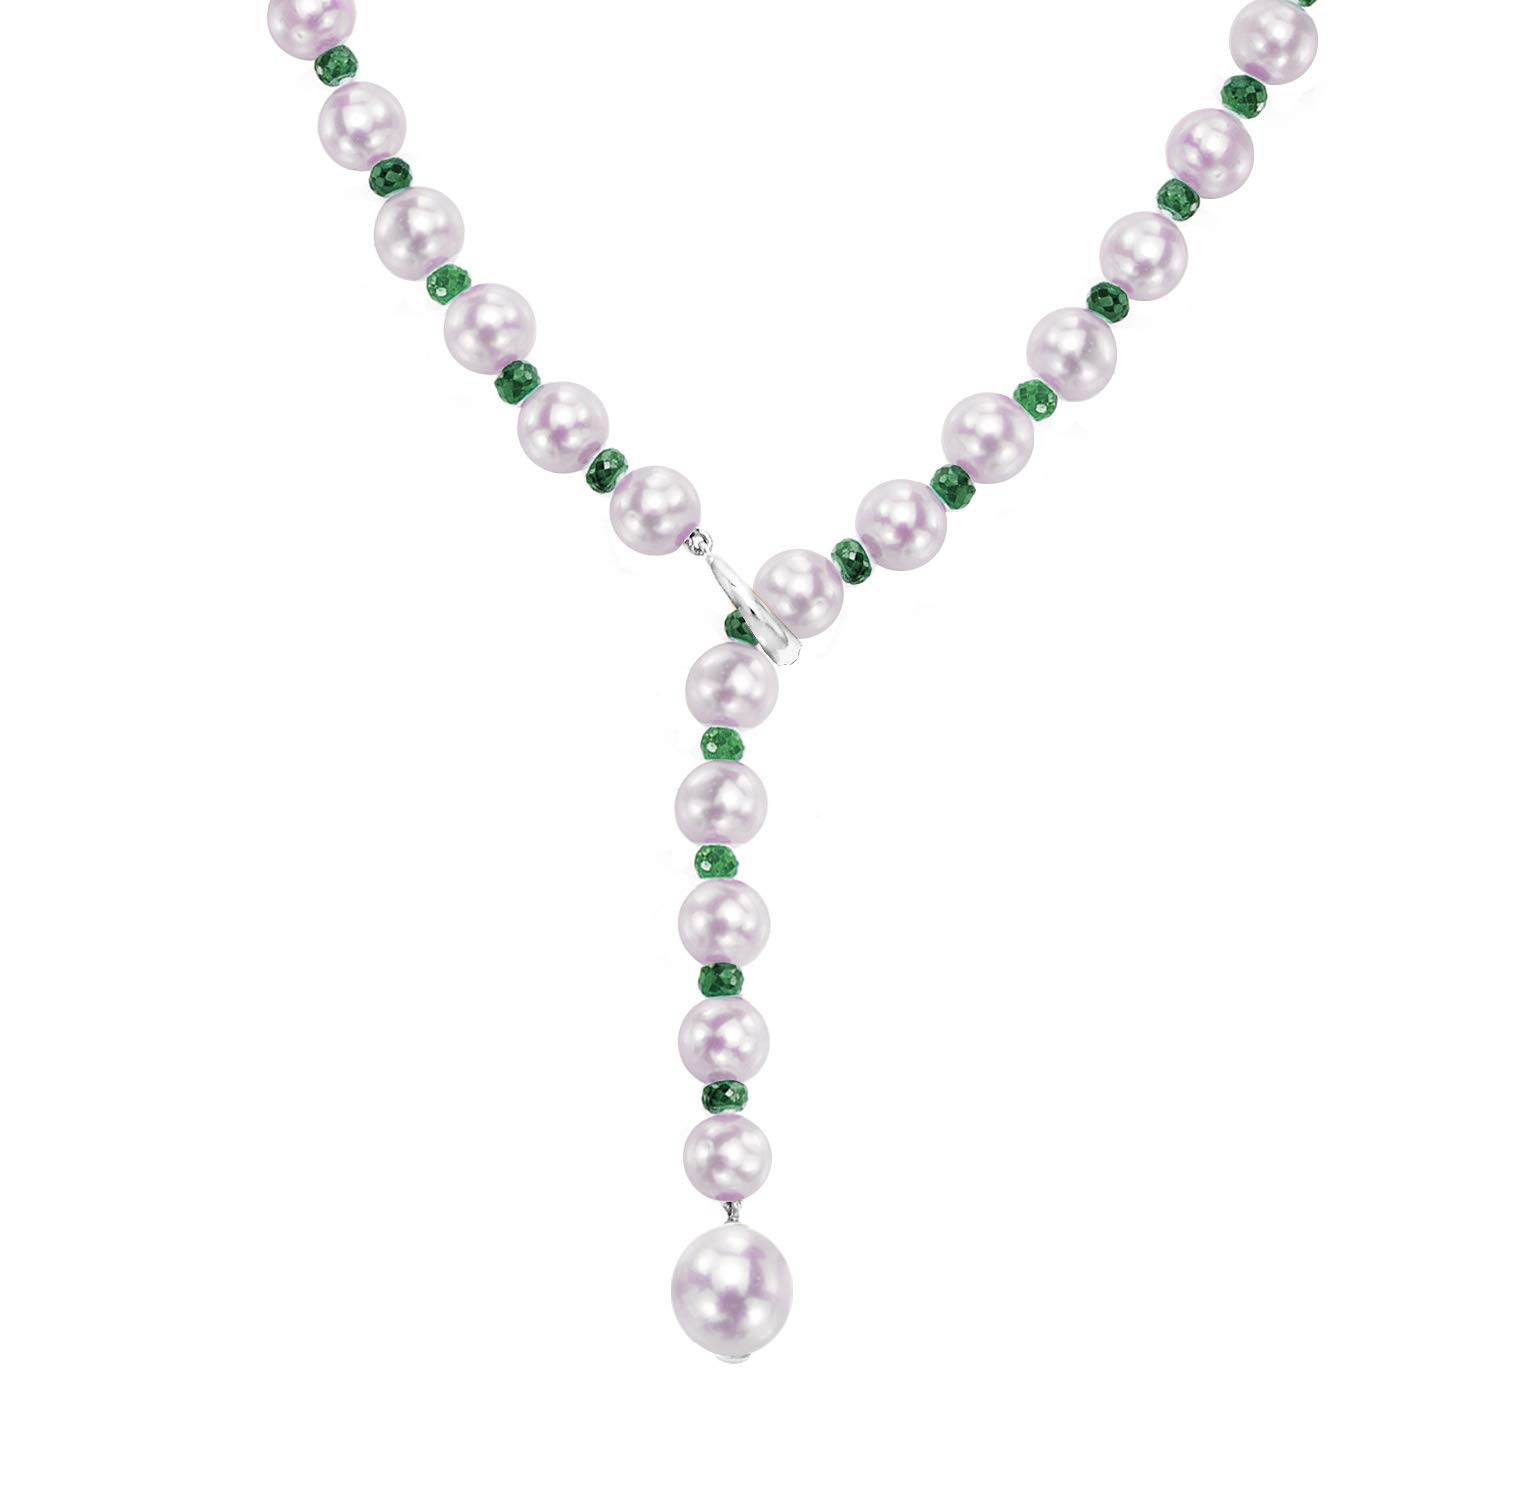 Green Emerald Gemstones and Freshwater Cultured Pearl Adjustable Necklace Sterling Silver Wedding Jewelry